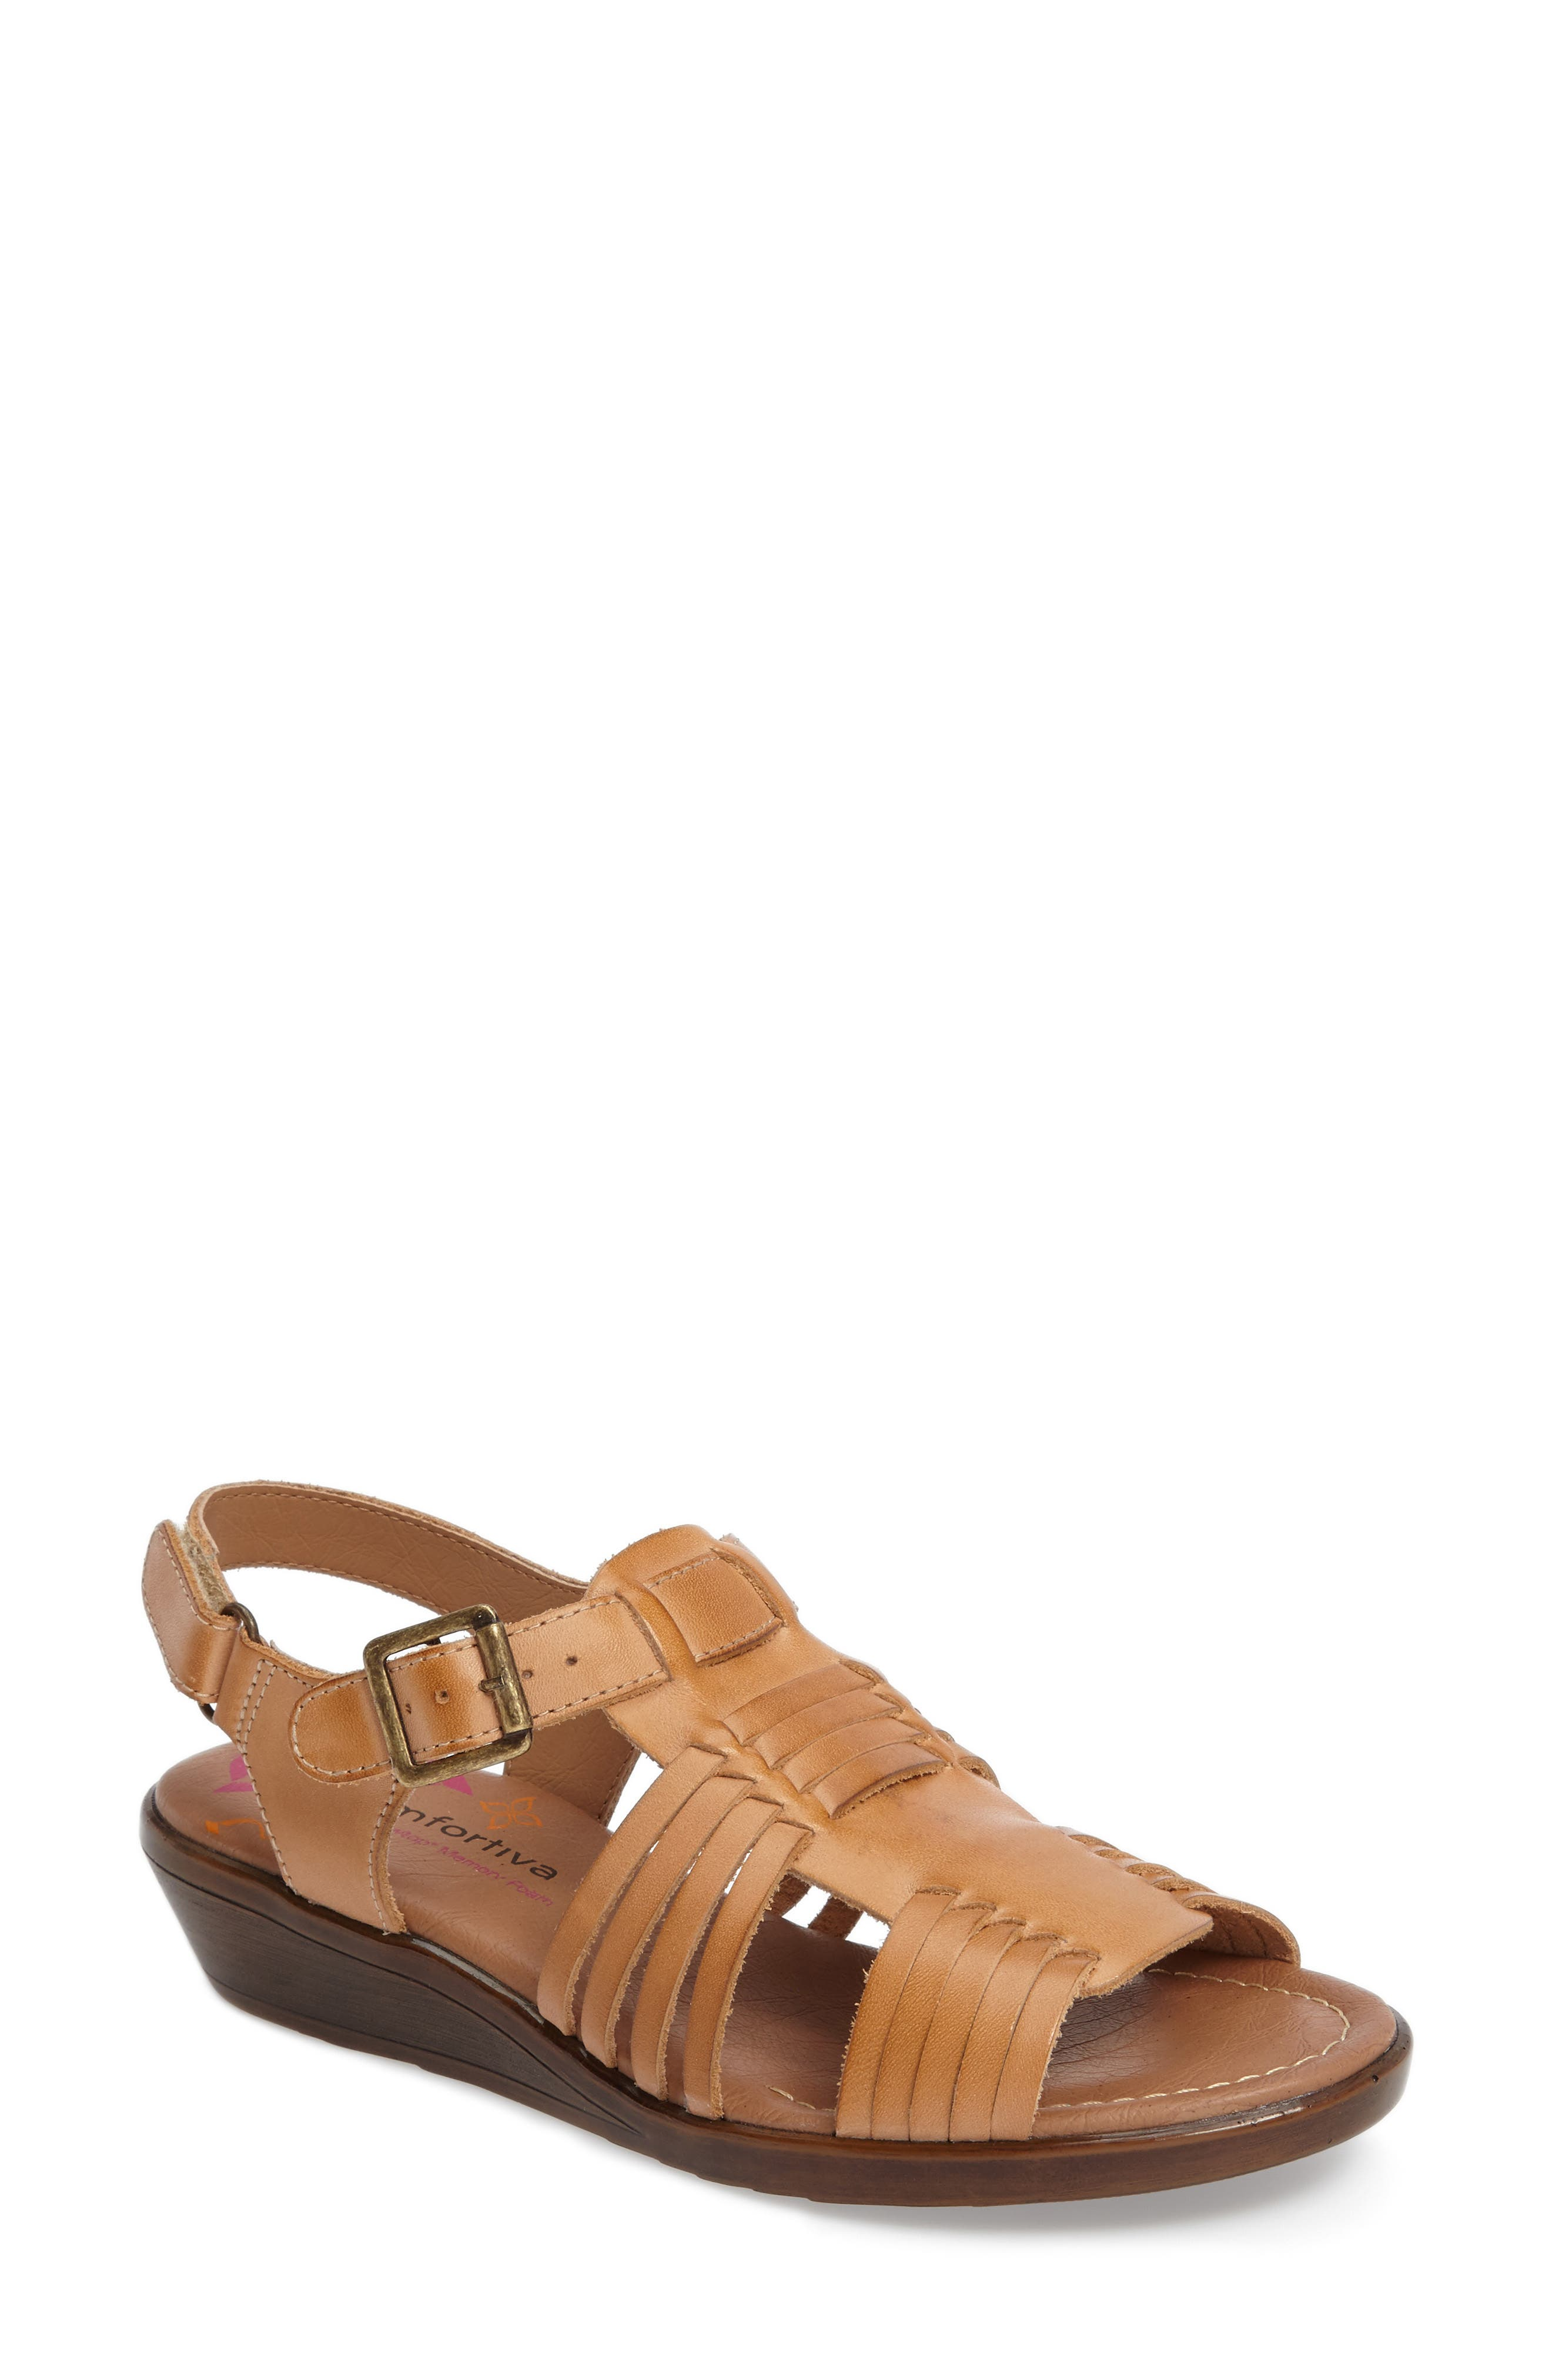 Freeport Sandal,                         Main,                         color, NATURAL LEATHER